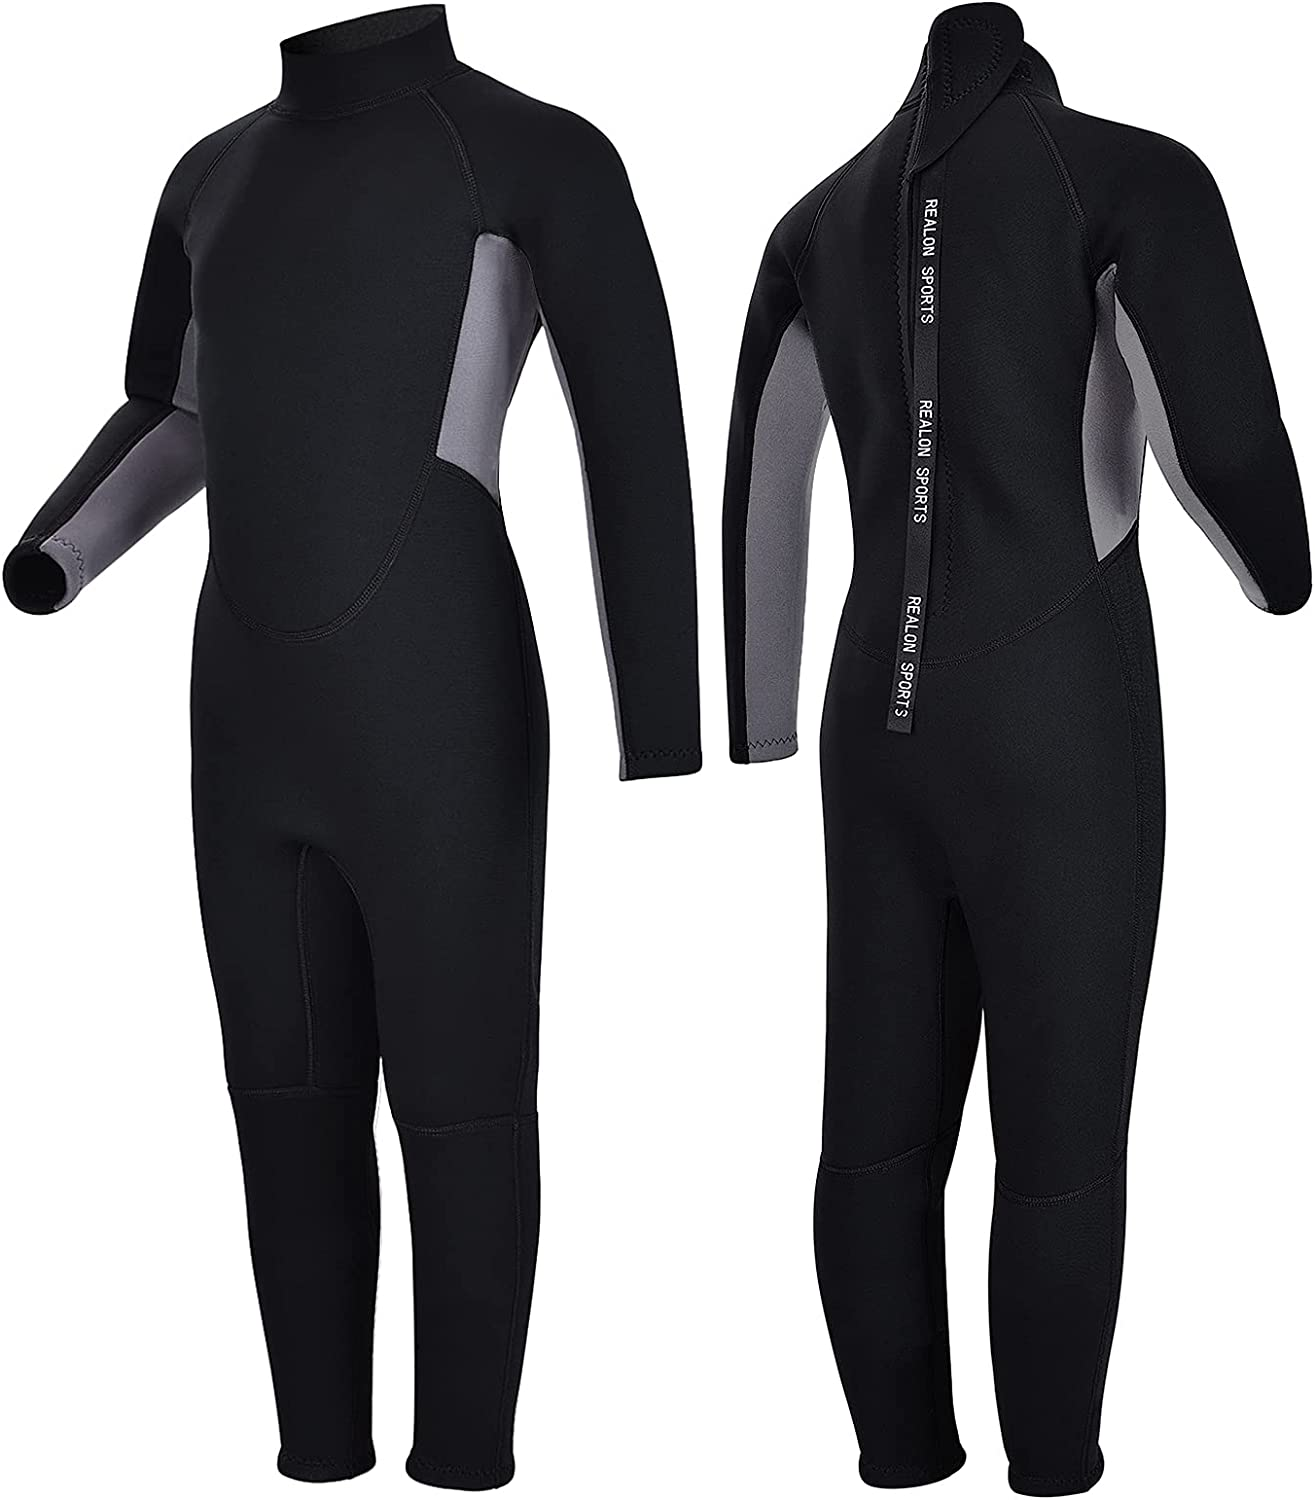 REALON Kids Excellence Wetsuit Shorty Boys Girls One Super intense SALE Neoprene Piece 3mm The